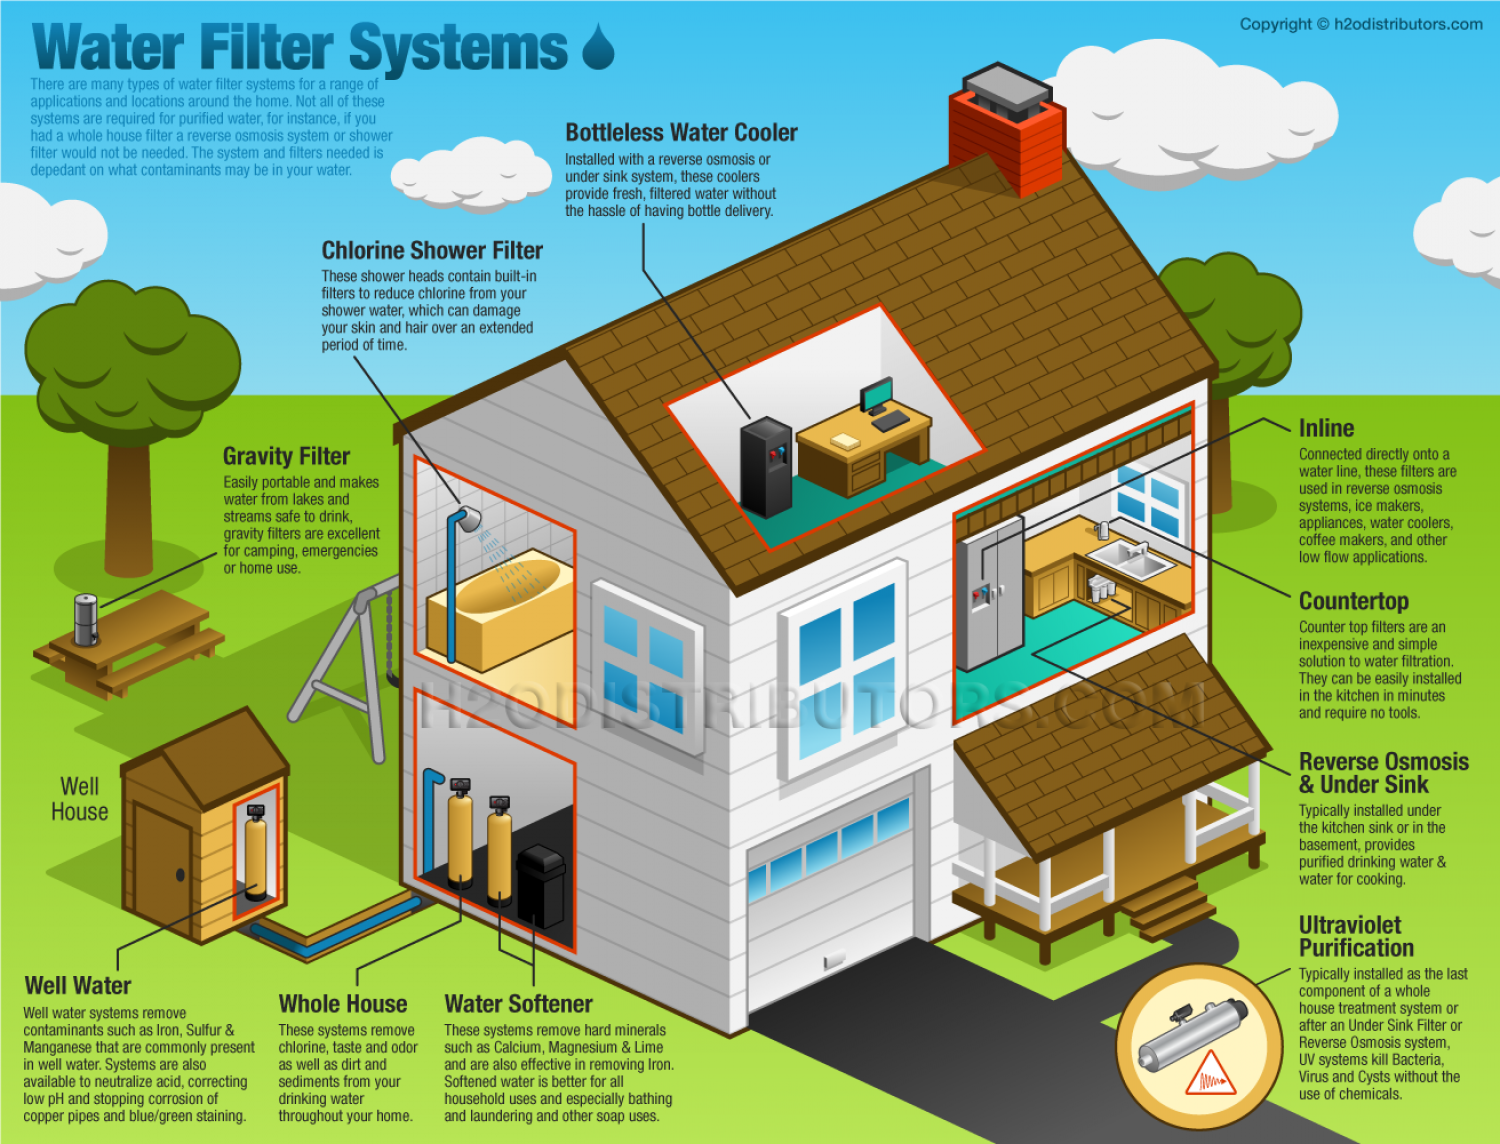 How To Filter Water Without A Filter Water Filter Systems Visually